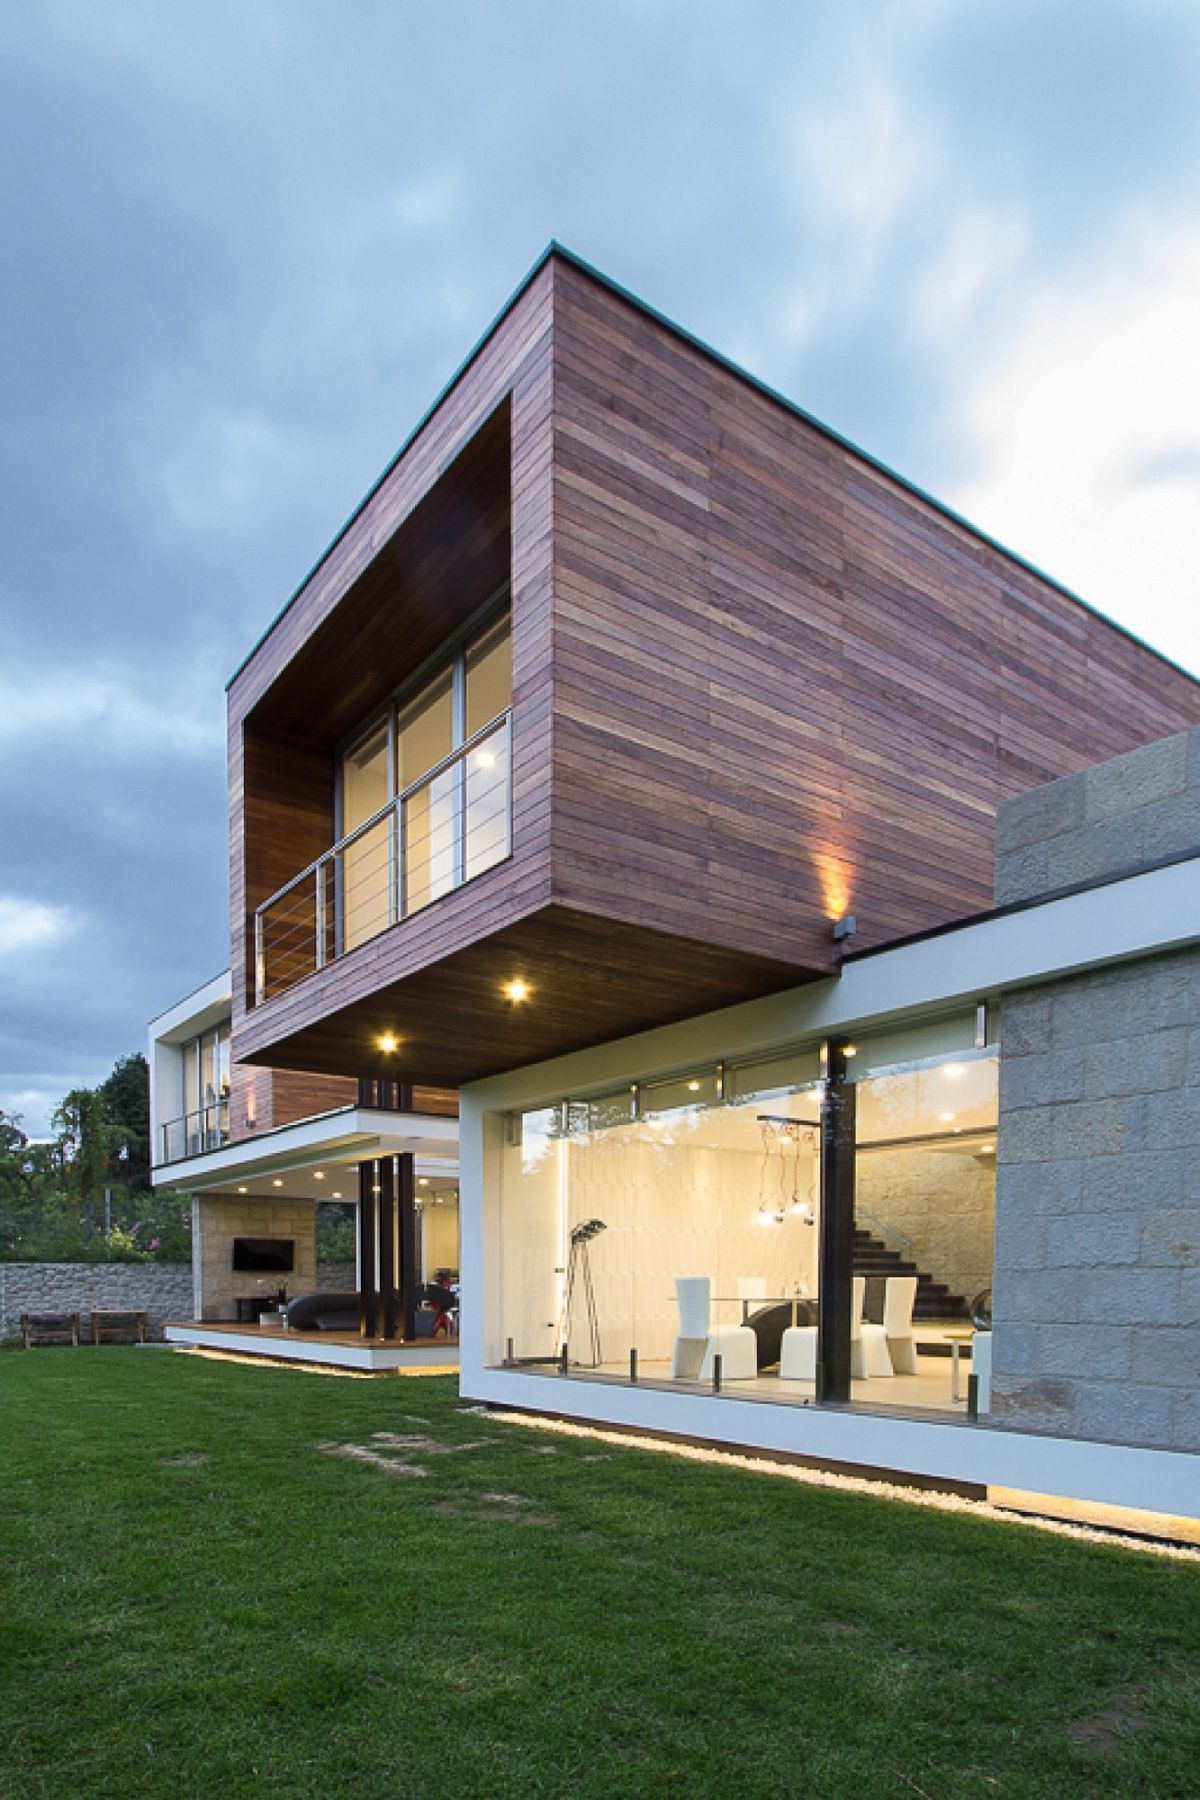 Top level of the house is draped in wood while the bottom structure is made from stone